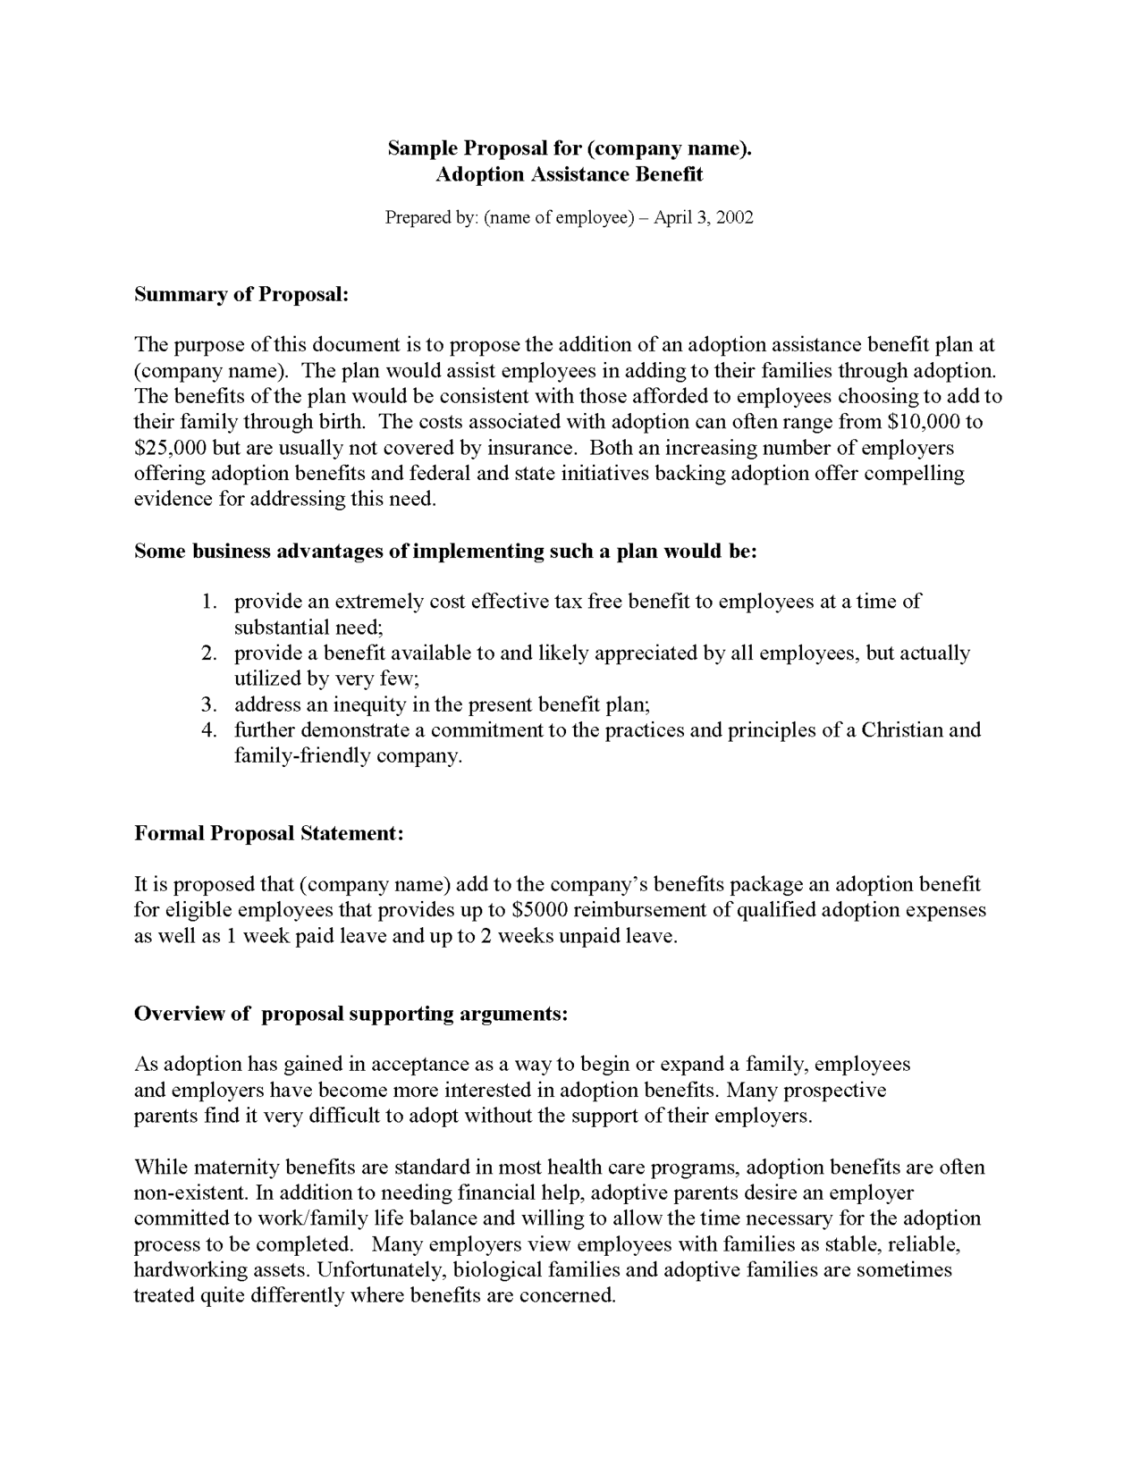 006 Essay Example Gallery Of Cover Letter Format Non Profit Persuasiveopics Business Planempemplate Canada Continuity Pdf Sba Sample Uk Free Download Doc Christian Imposing Persuasive Topics Argumentative Full